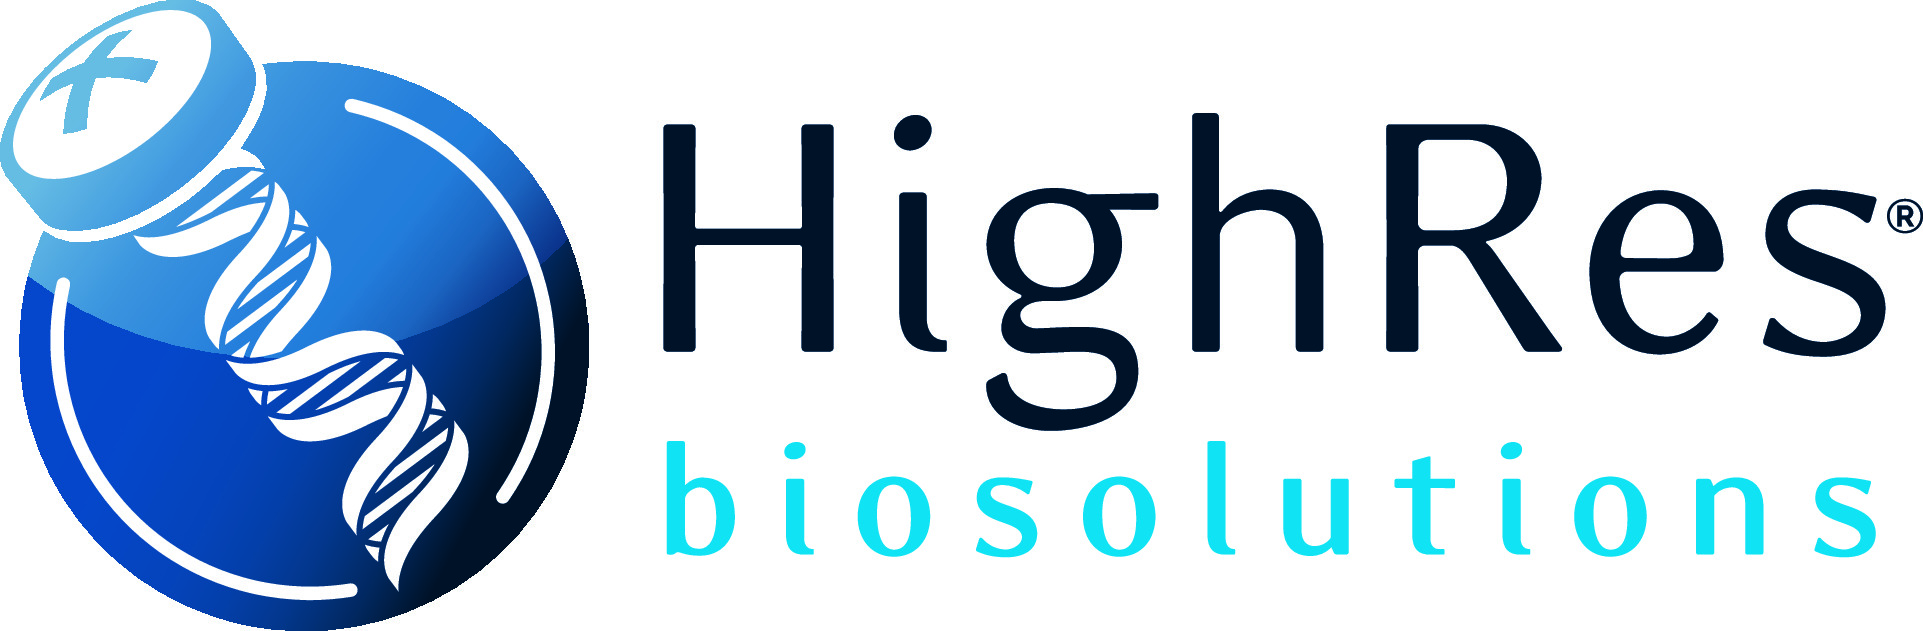 HighRes-Biosolutions.jpg